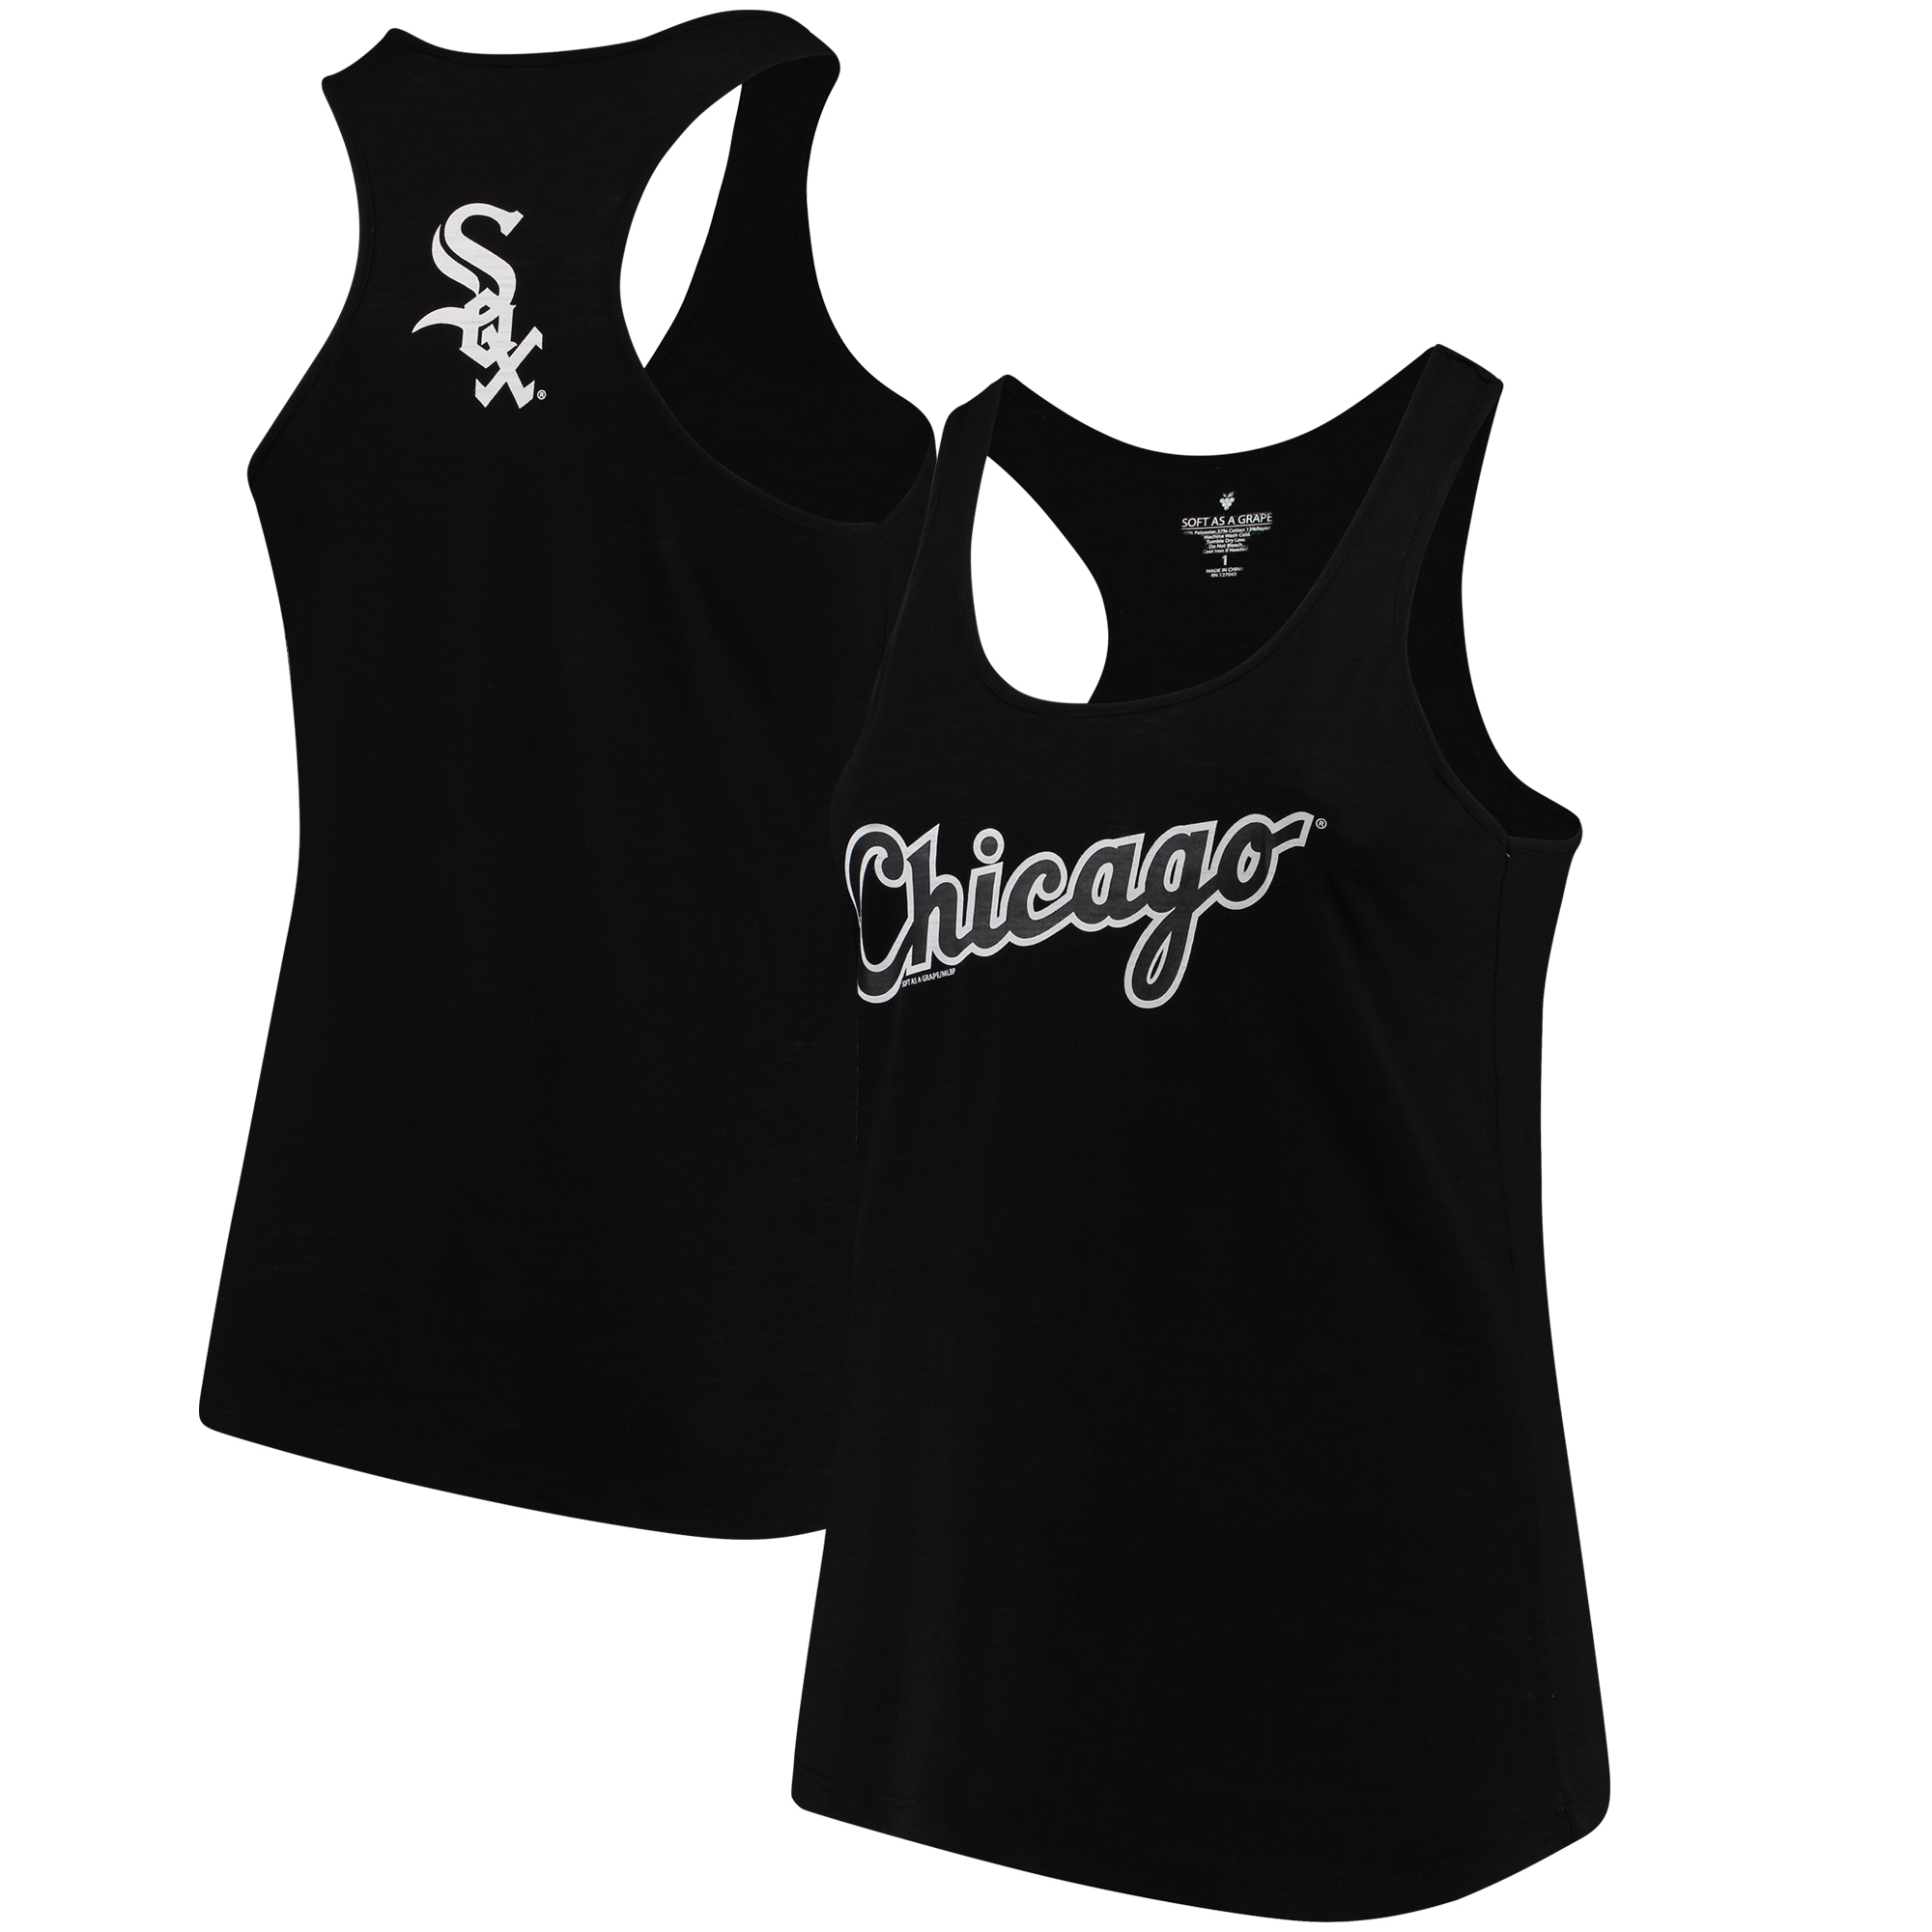 Chicago White Sox Soft as a Grape Women's Plus Size Swing for the Fences Racerback Tank Top - Black